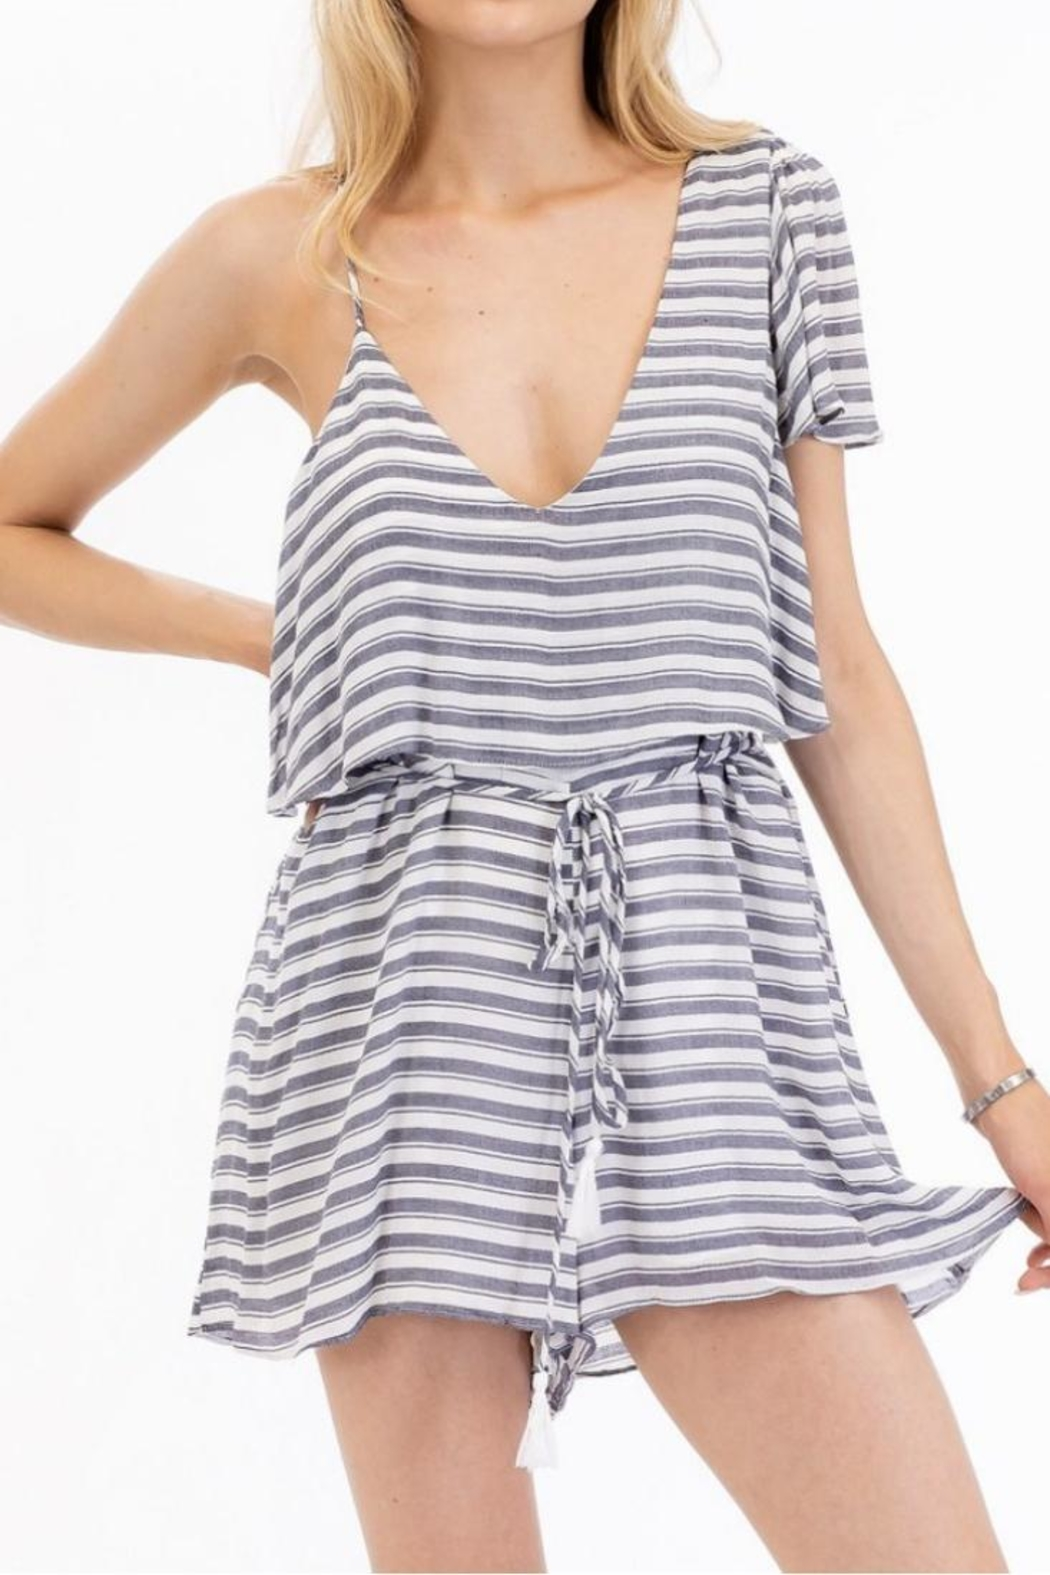 Olivaceous Striped Flirty Romper - Main Image